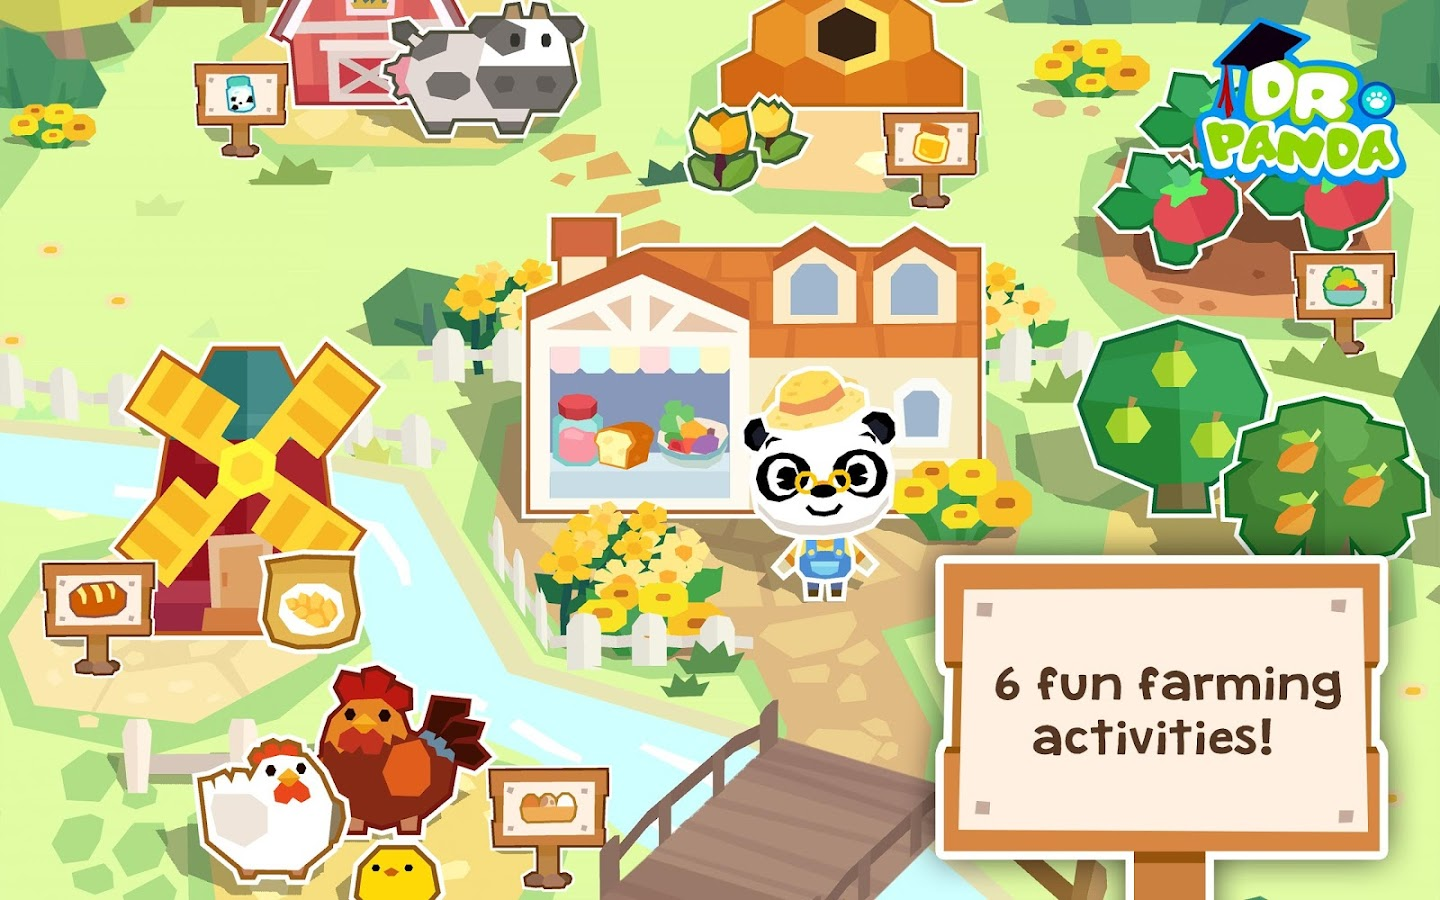 Dr. Panda Farm Screenshot 5